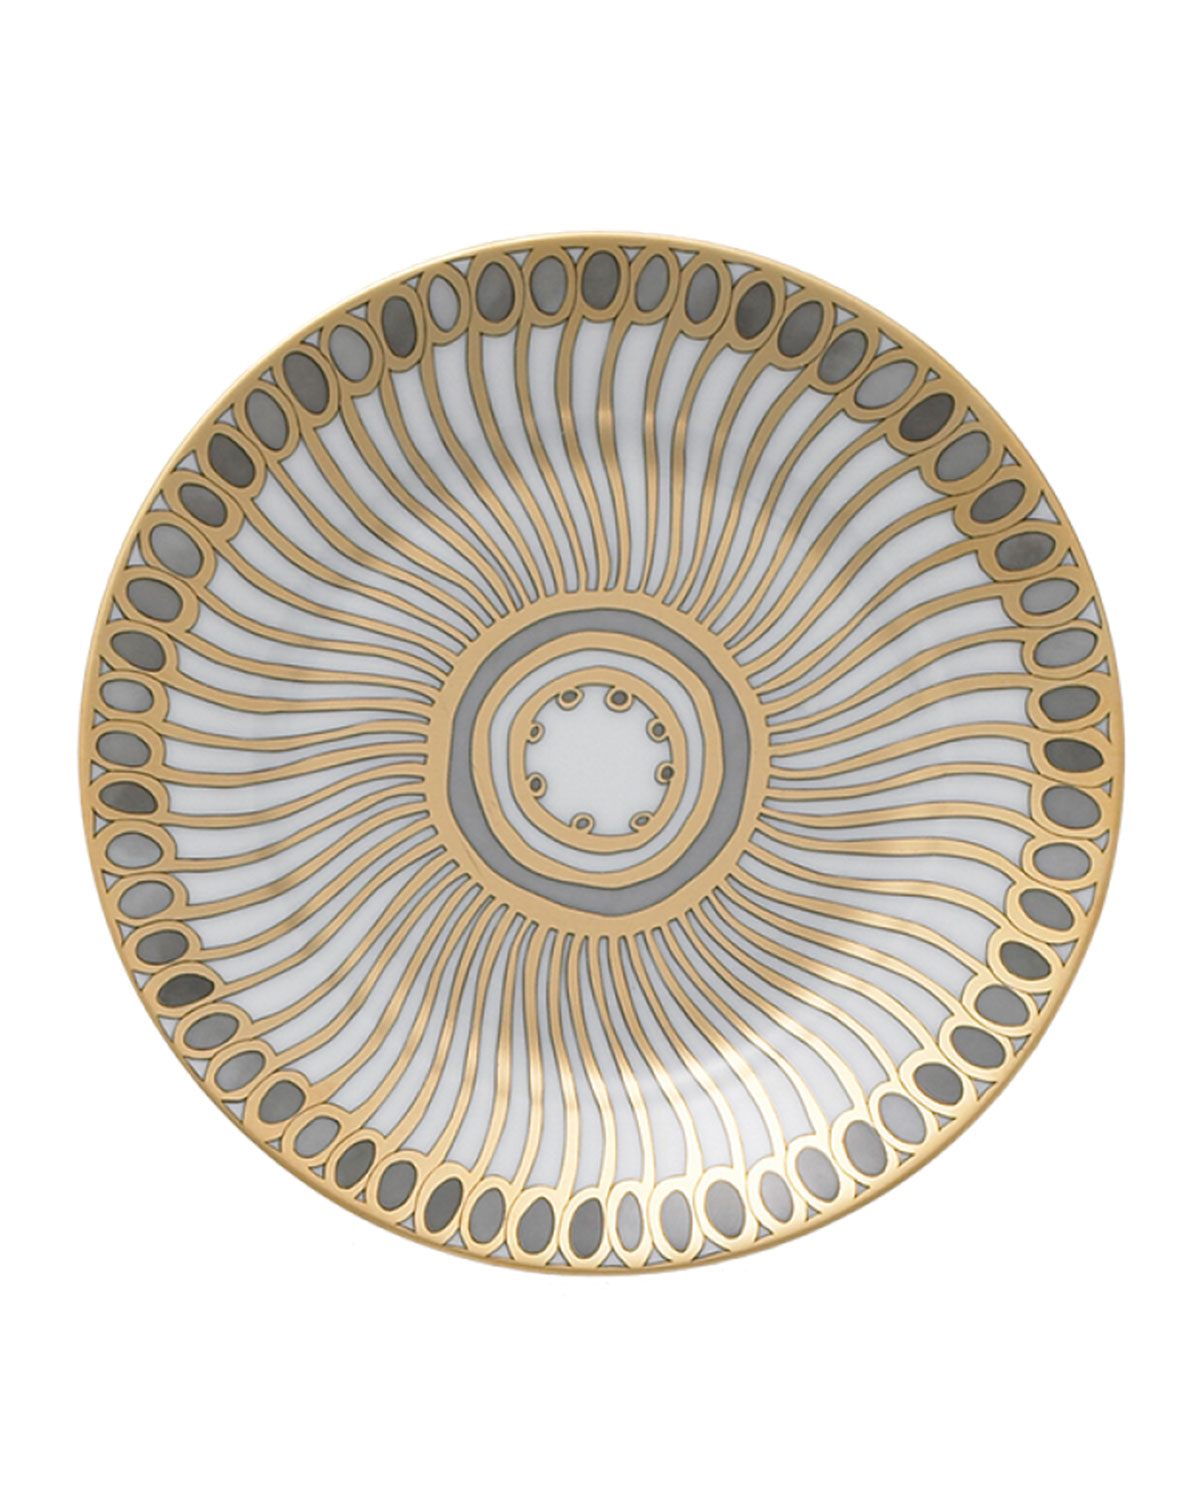 Haviland & Parlon SYRACUSE TAUPE BREAD & BUTTER PLATE